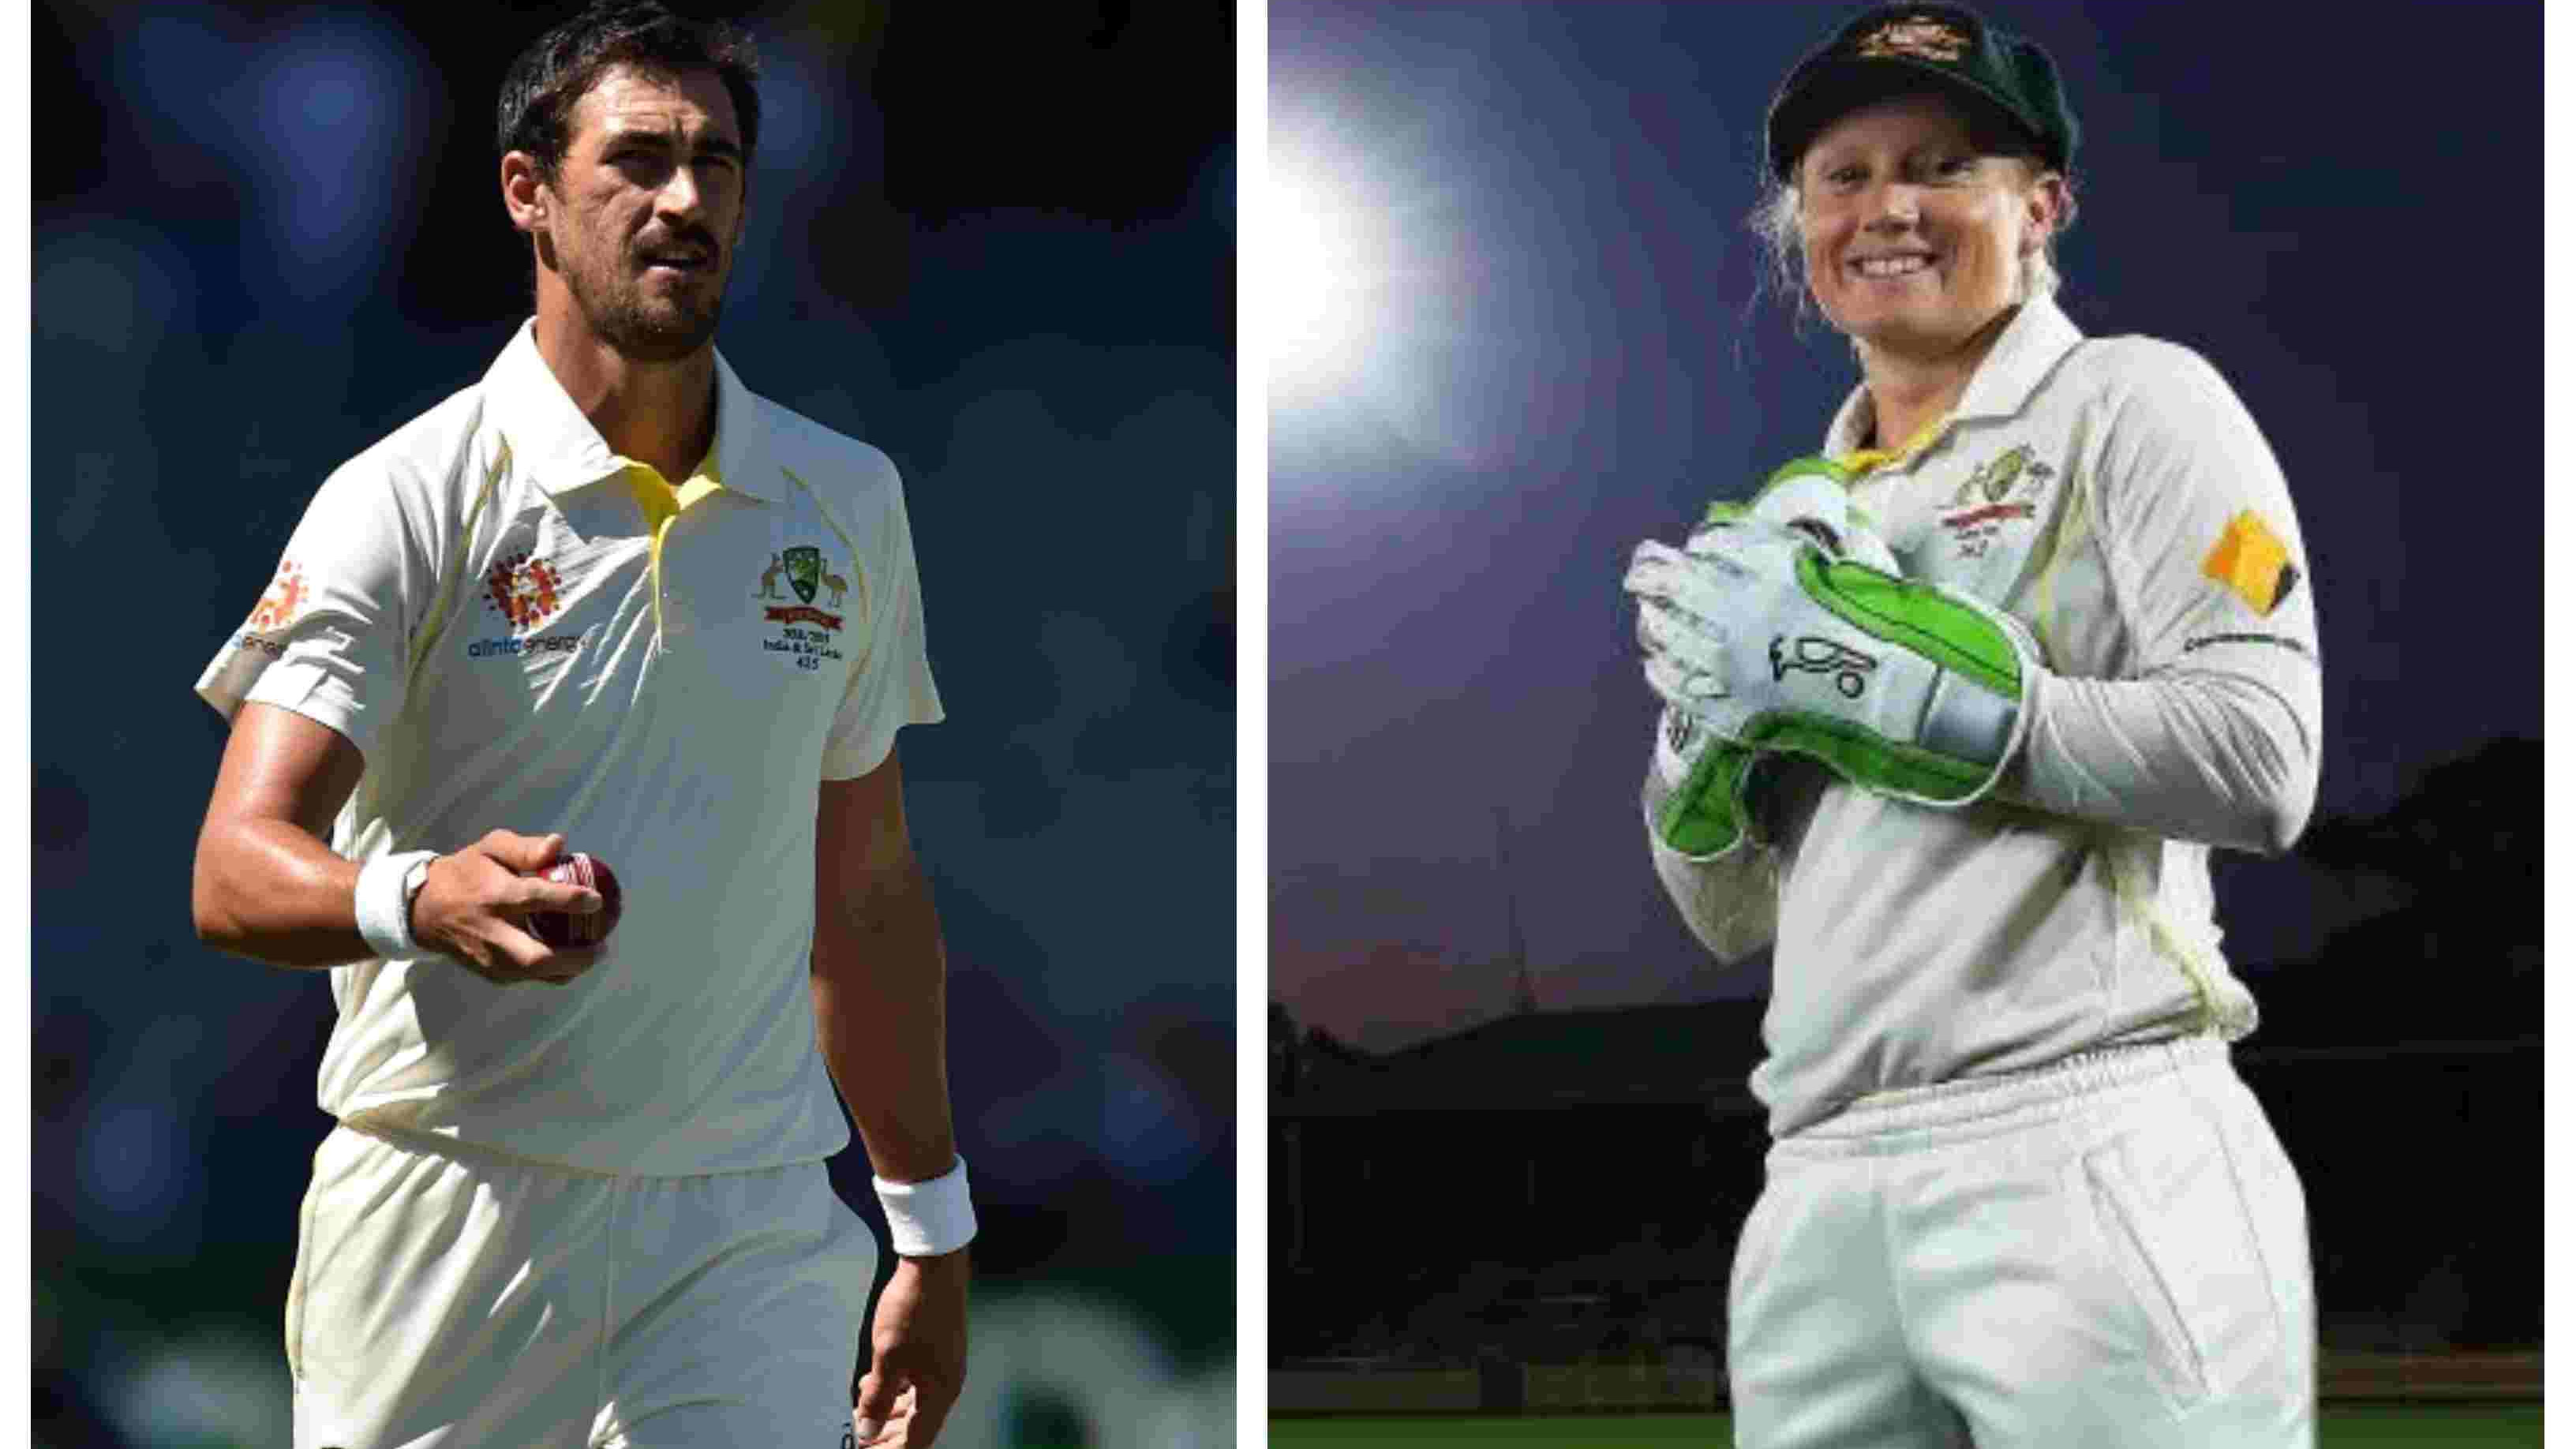 AUS v IND 2018-19: Alyssa Healy hits out at husband Mitchell Starc's detractors